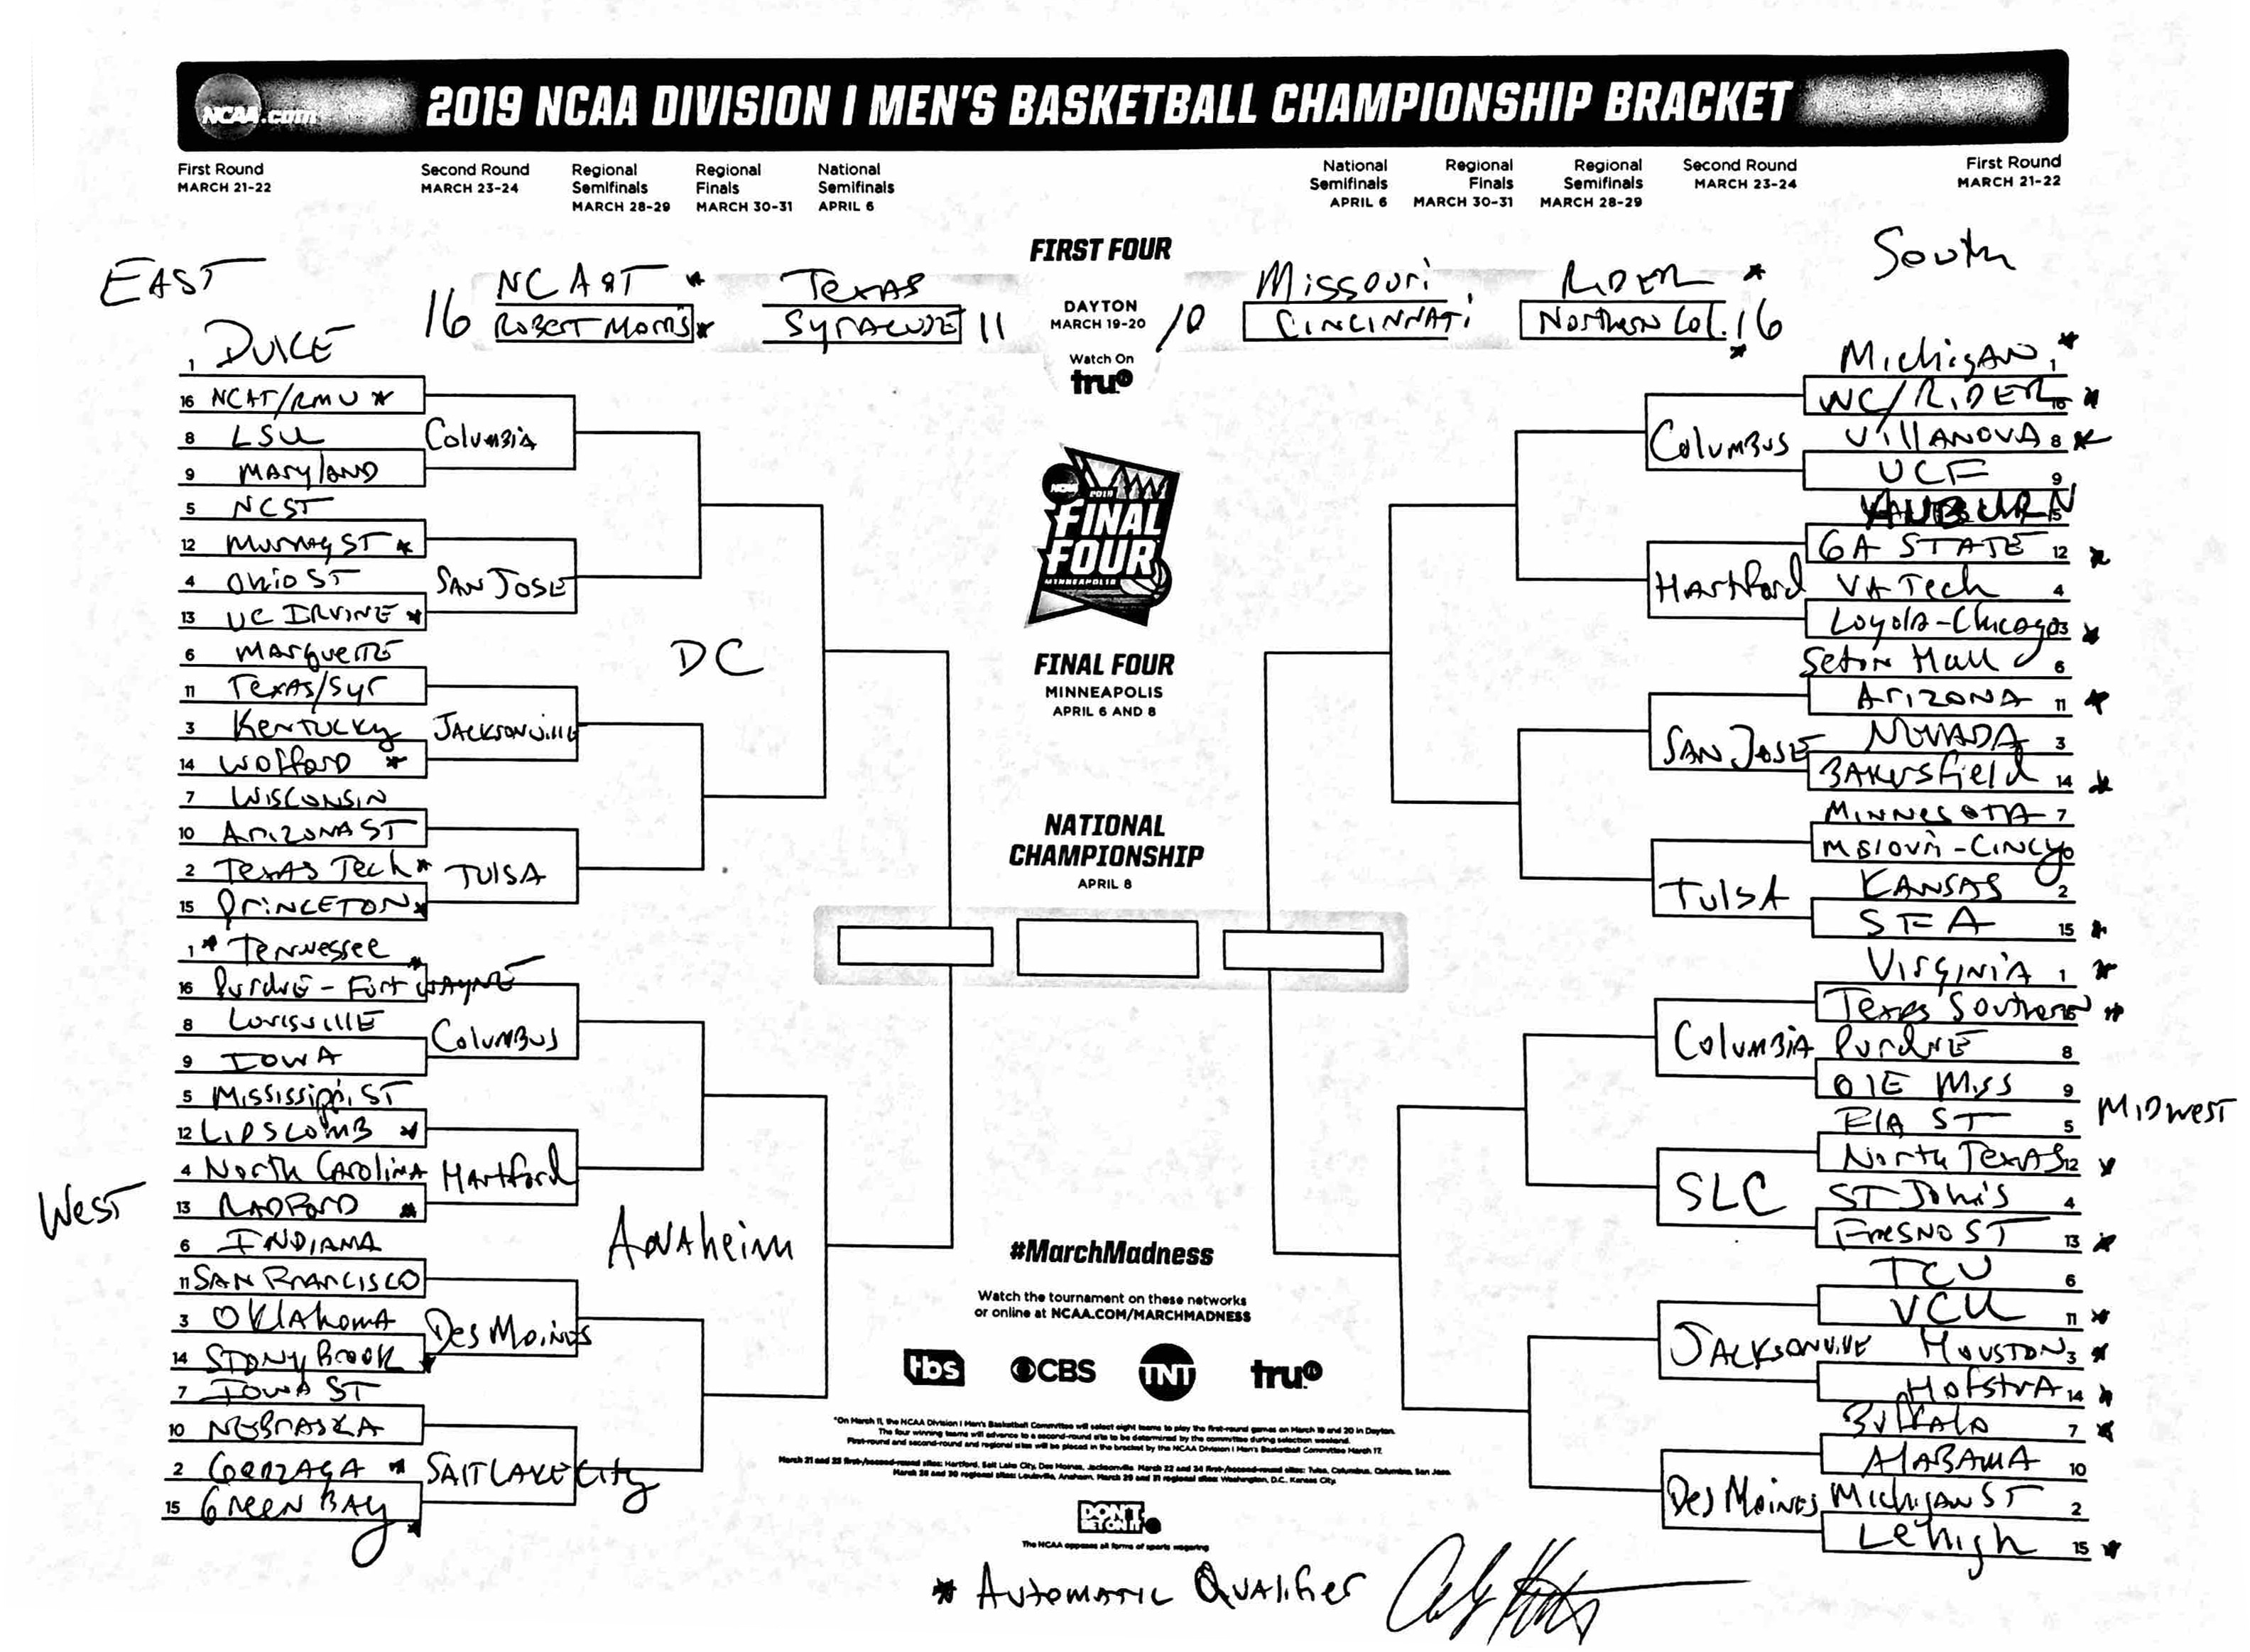 March Madness Projected 2019 Ncaa Tournament Bracket: The March Madness Field, Predicted At Start Of Conference